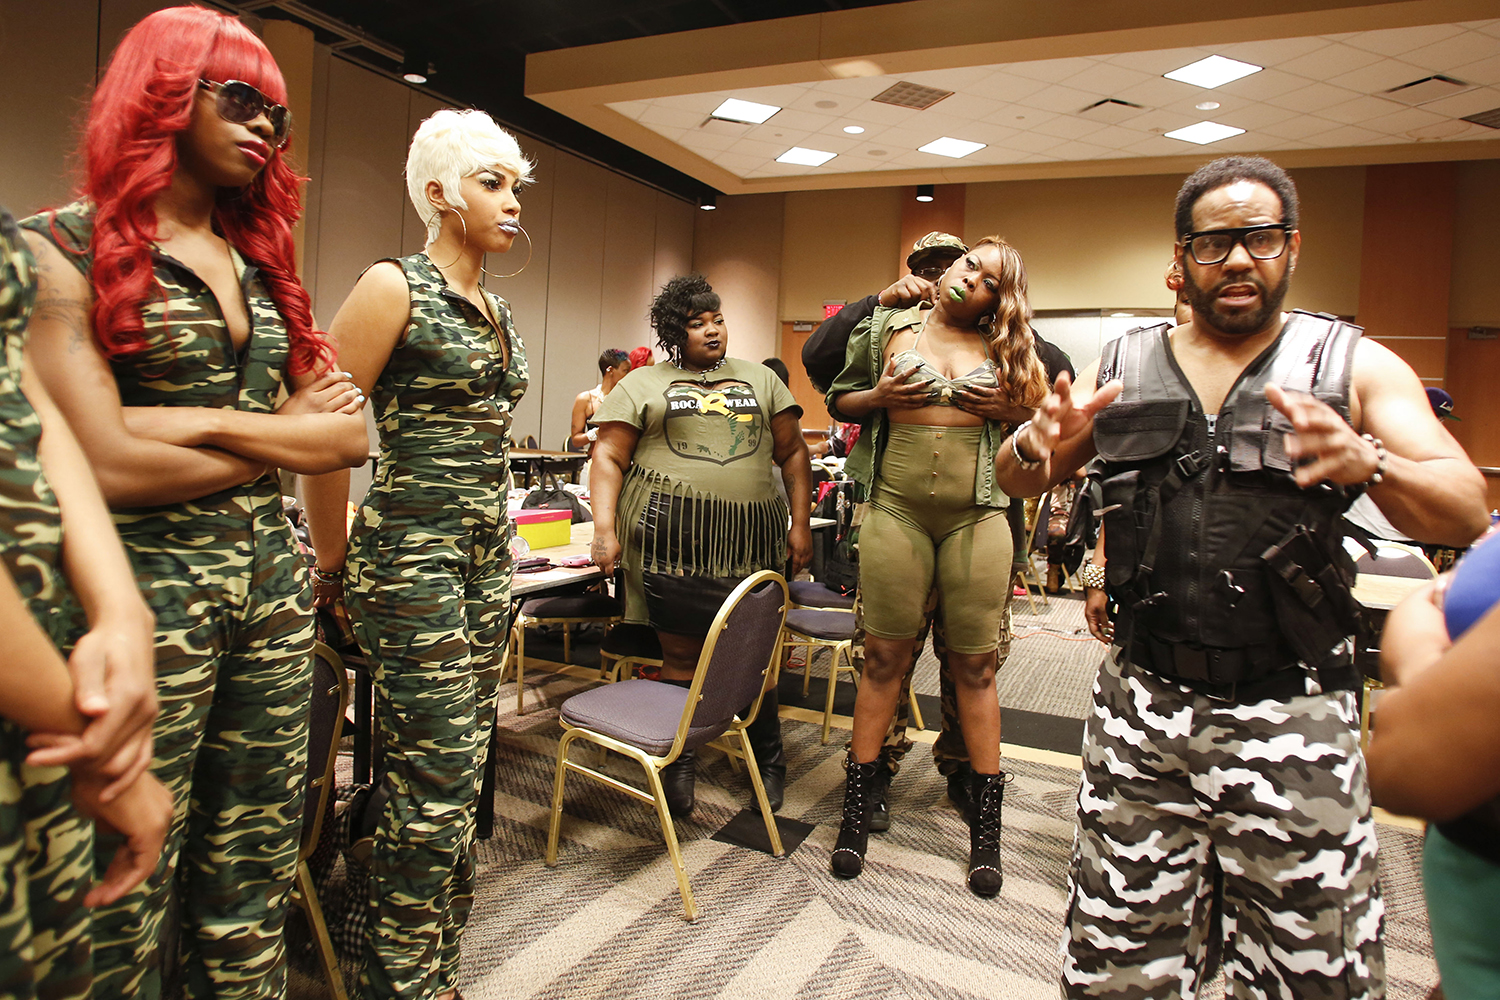 Anthony Stewart, 35, center left, assists Keya Pearson, 35, center right, with her costume before taking the stage for Hair Wars on Sunday, May 4, 2014 at the Adoba Hotel in Dearborn. Tim Galloway for Al Jazeera America